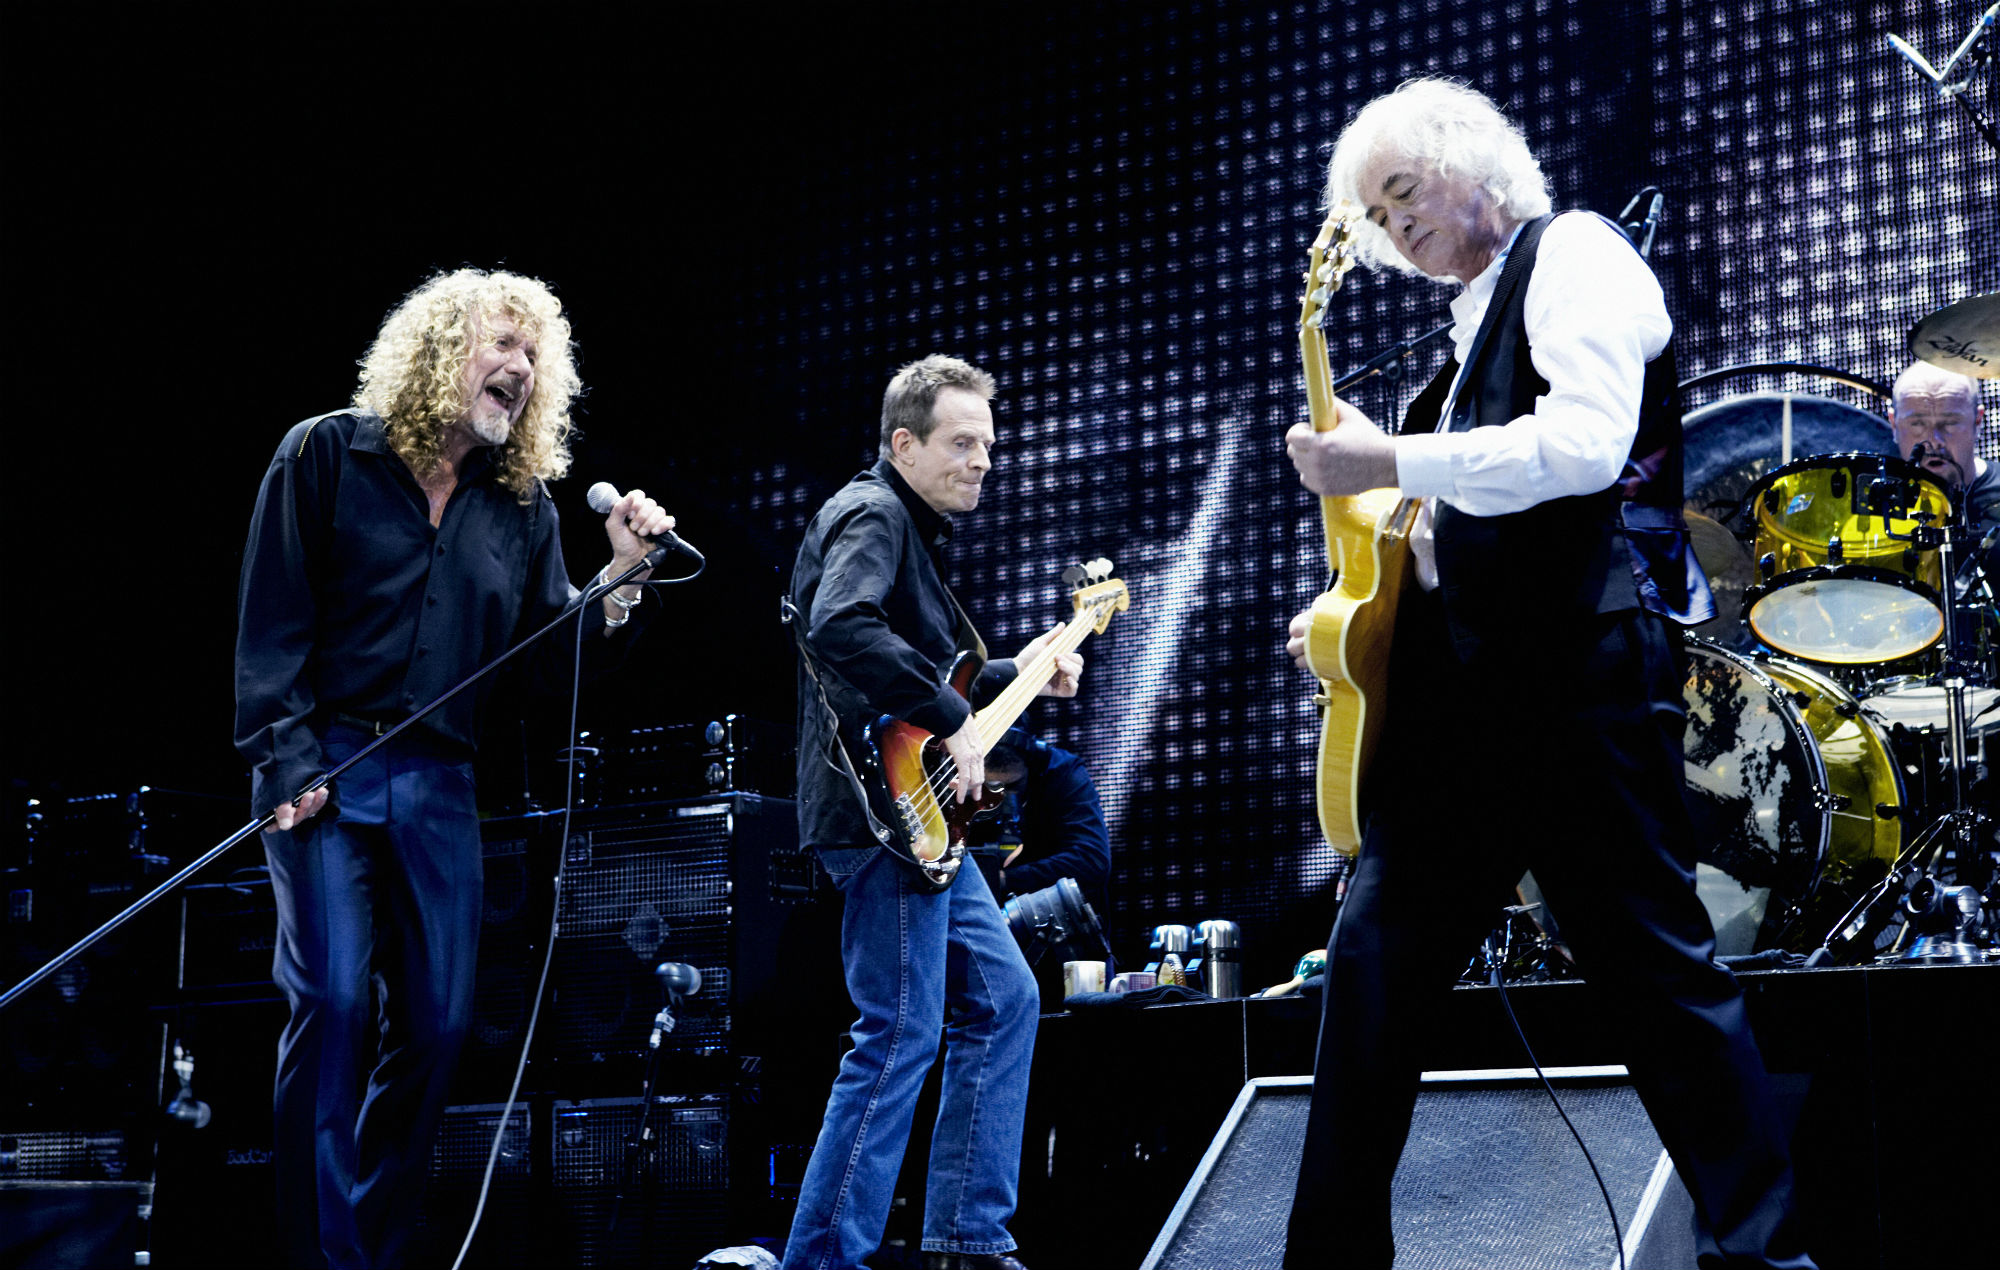 Led Zeppelin to stream 'Celebration Day' reunion concert film for free this weekend - EpicNews